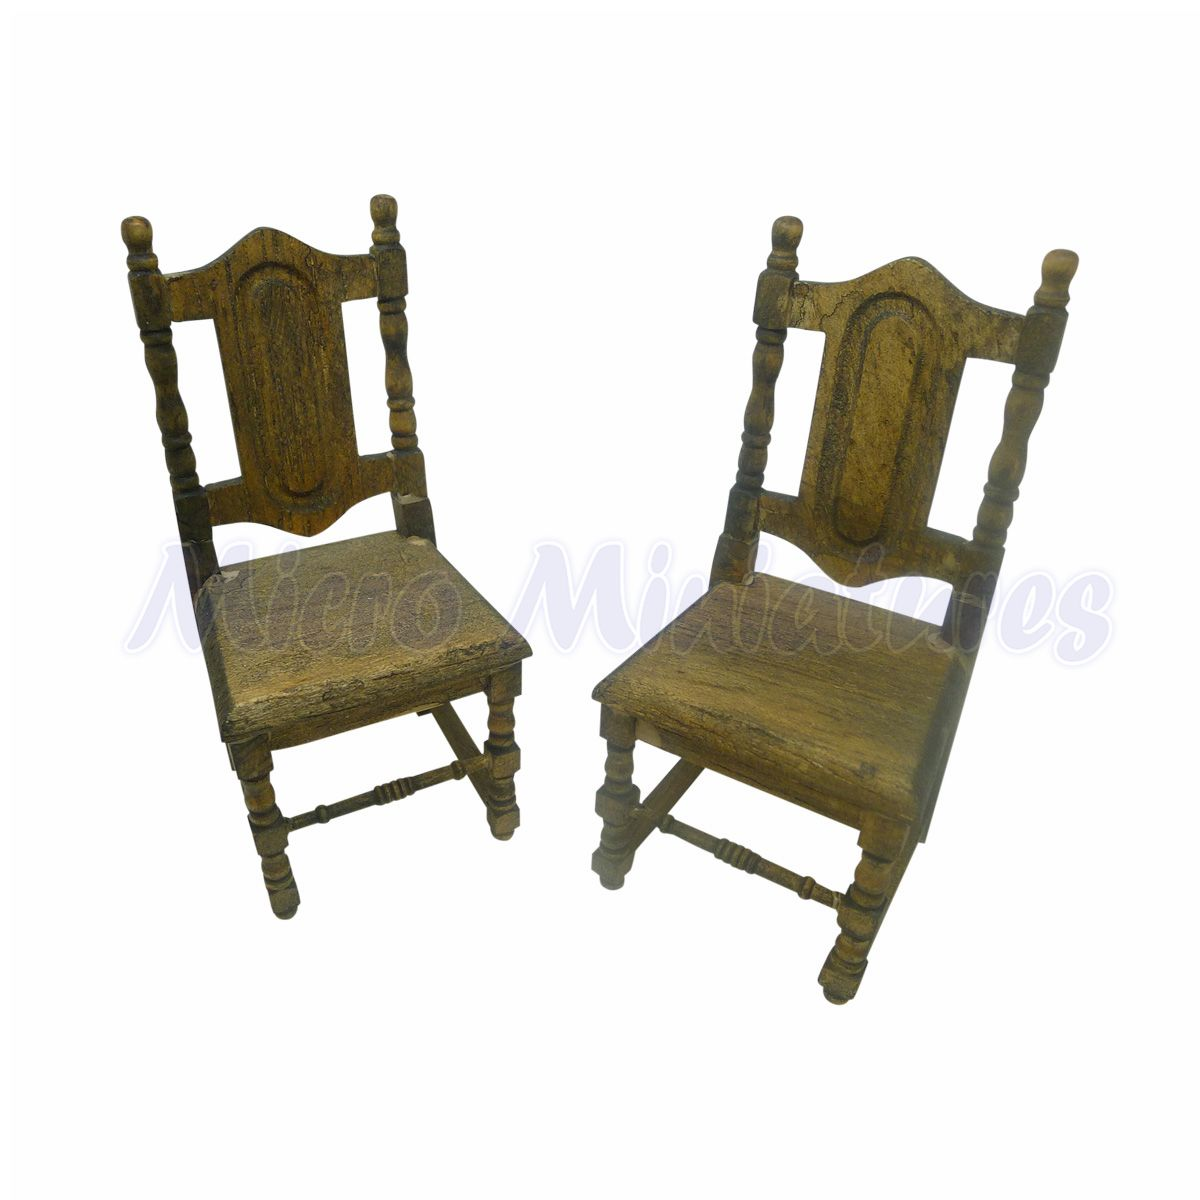 Drop Leaf Table 12th Scale Dolls House Furniture Pine